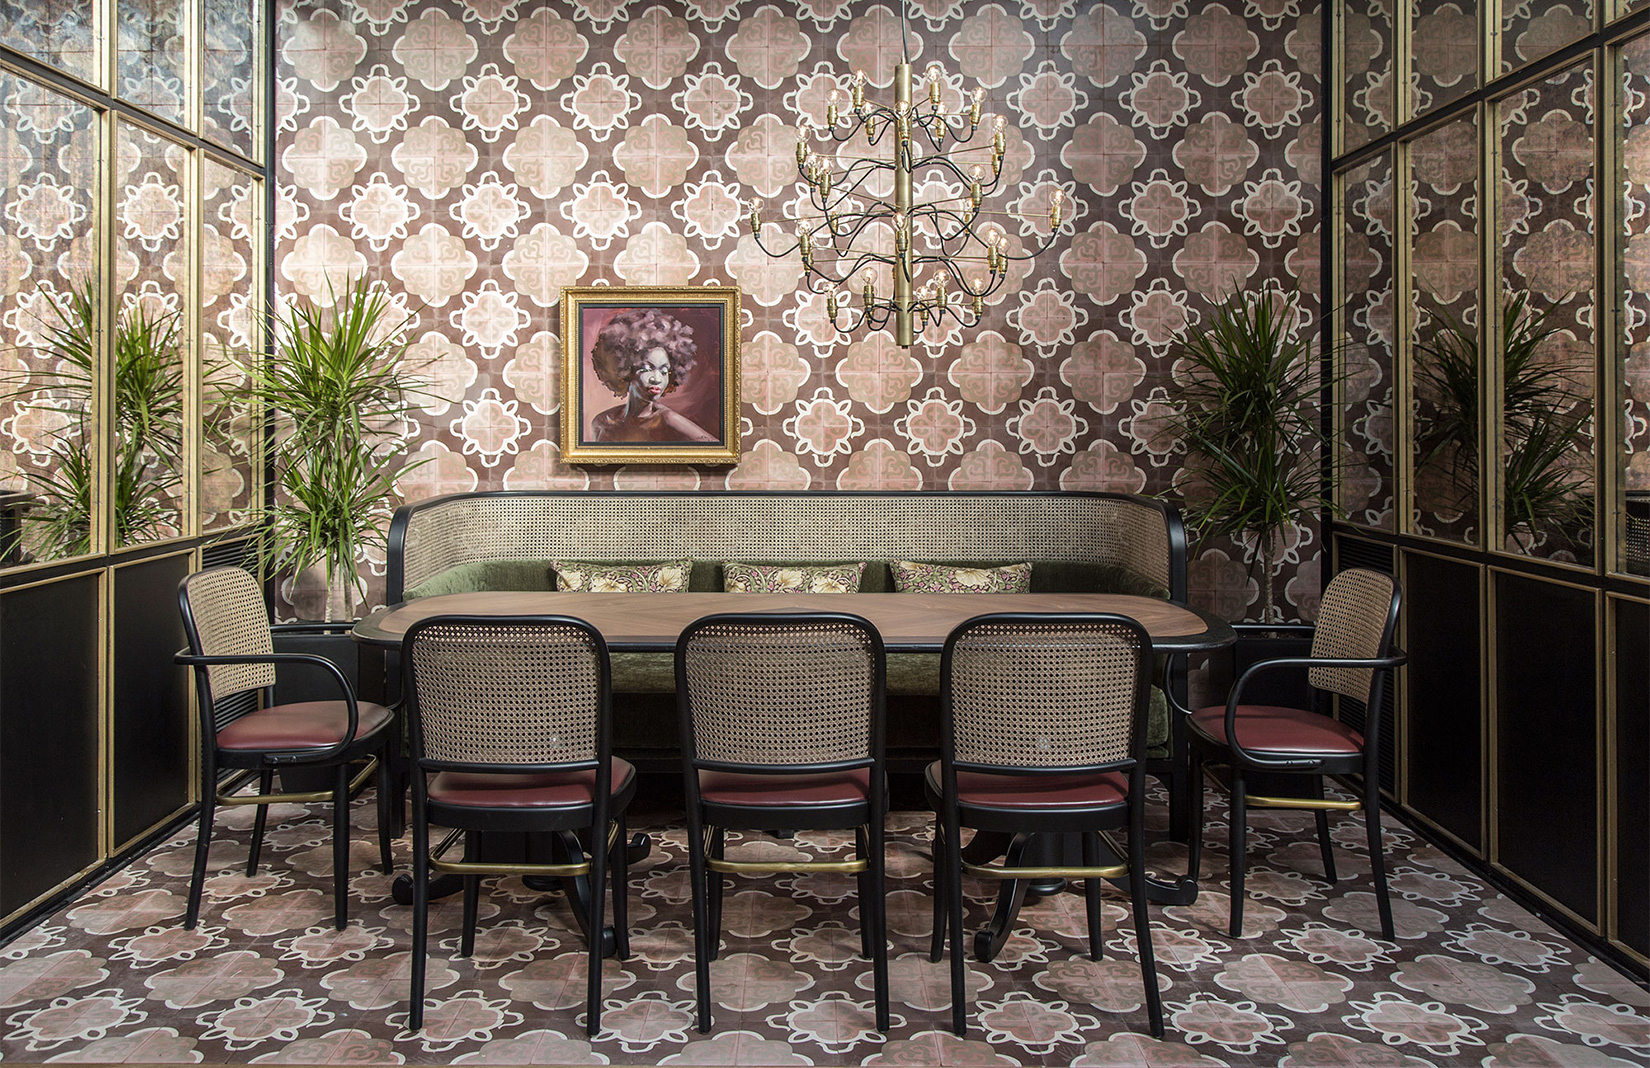 Minos Kosmidis designed the interiors for new Athens bar and restaurant Papillon which channels a 19th-century Parisian vibe.